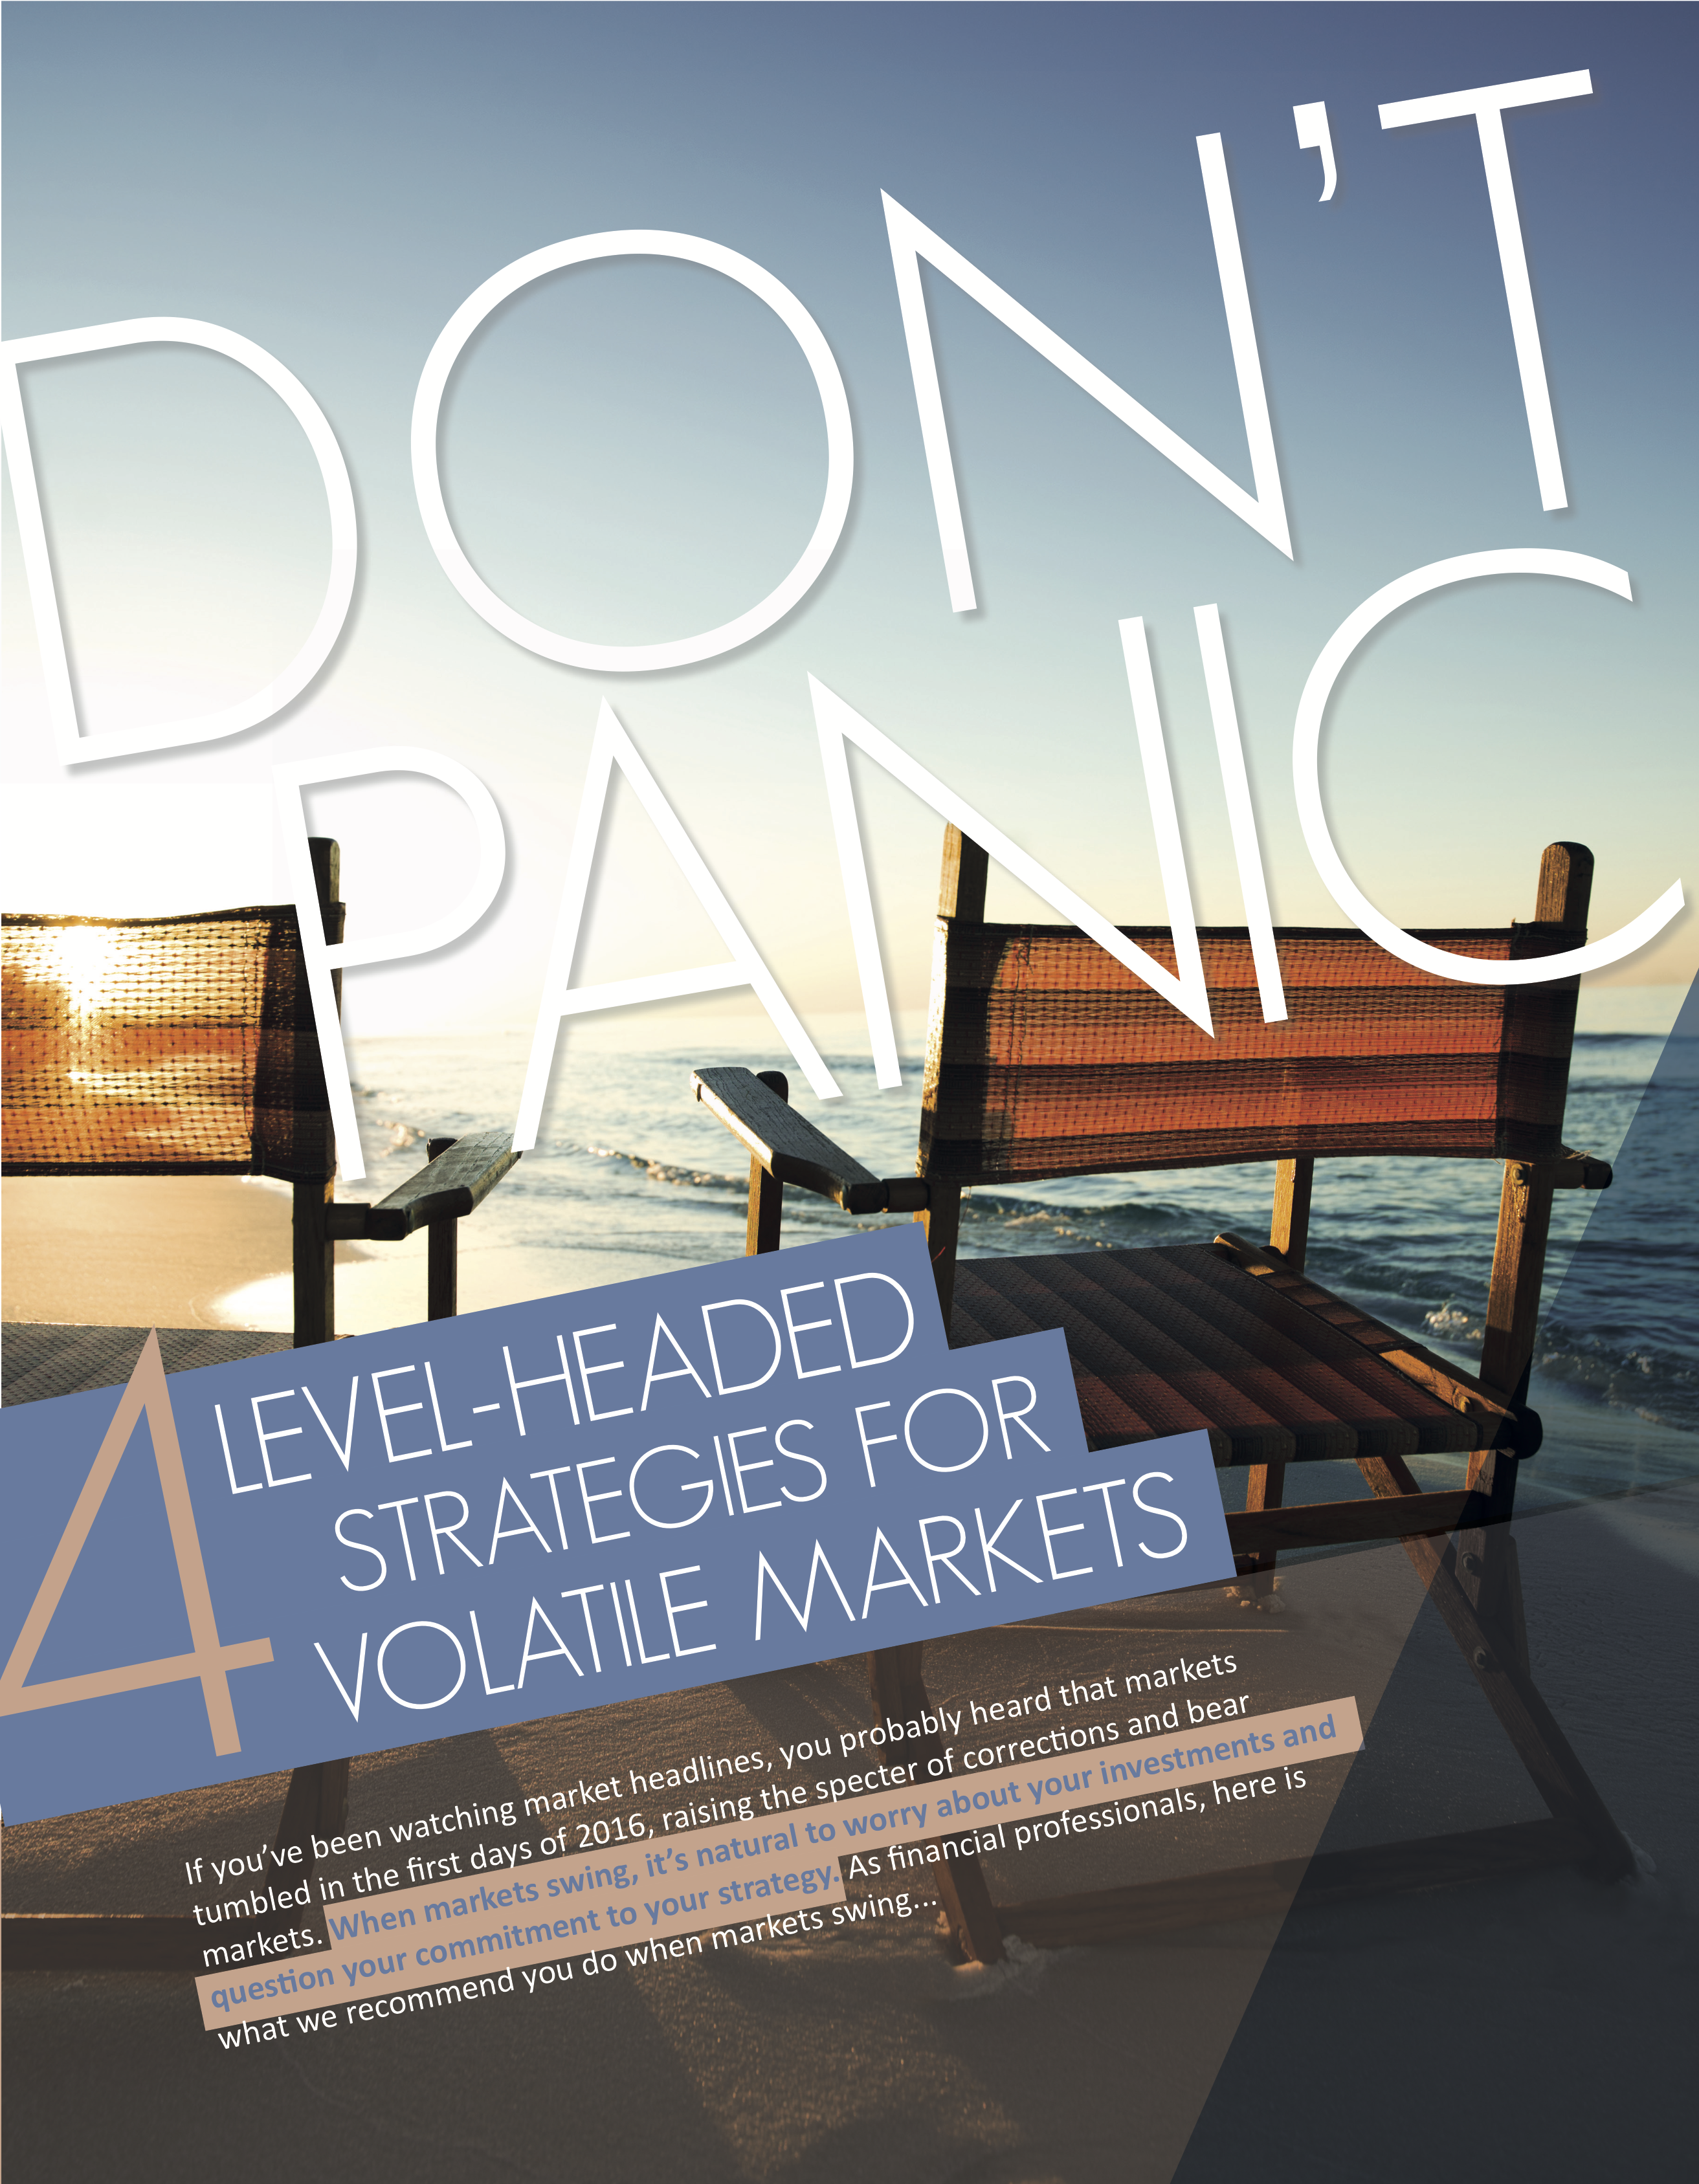 Guide cover page - 4 level-head strategies for volatile markets